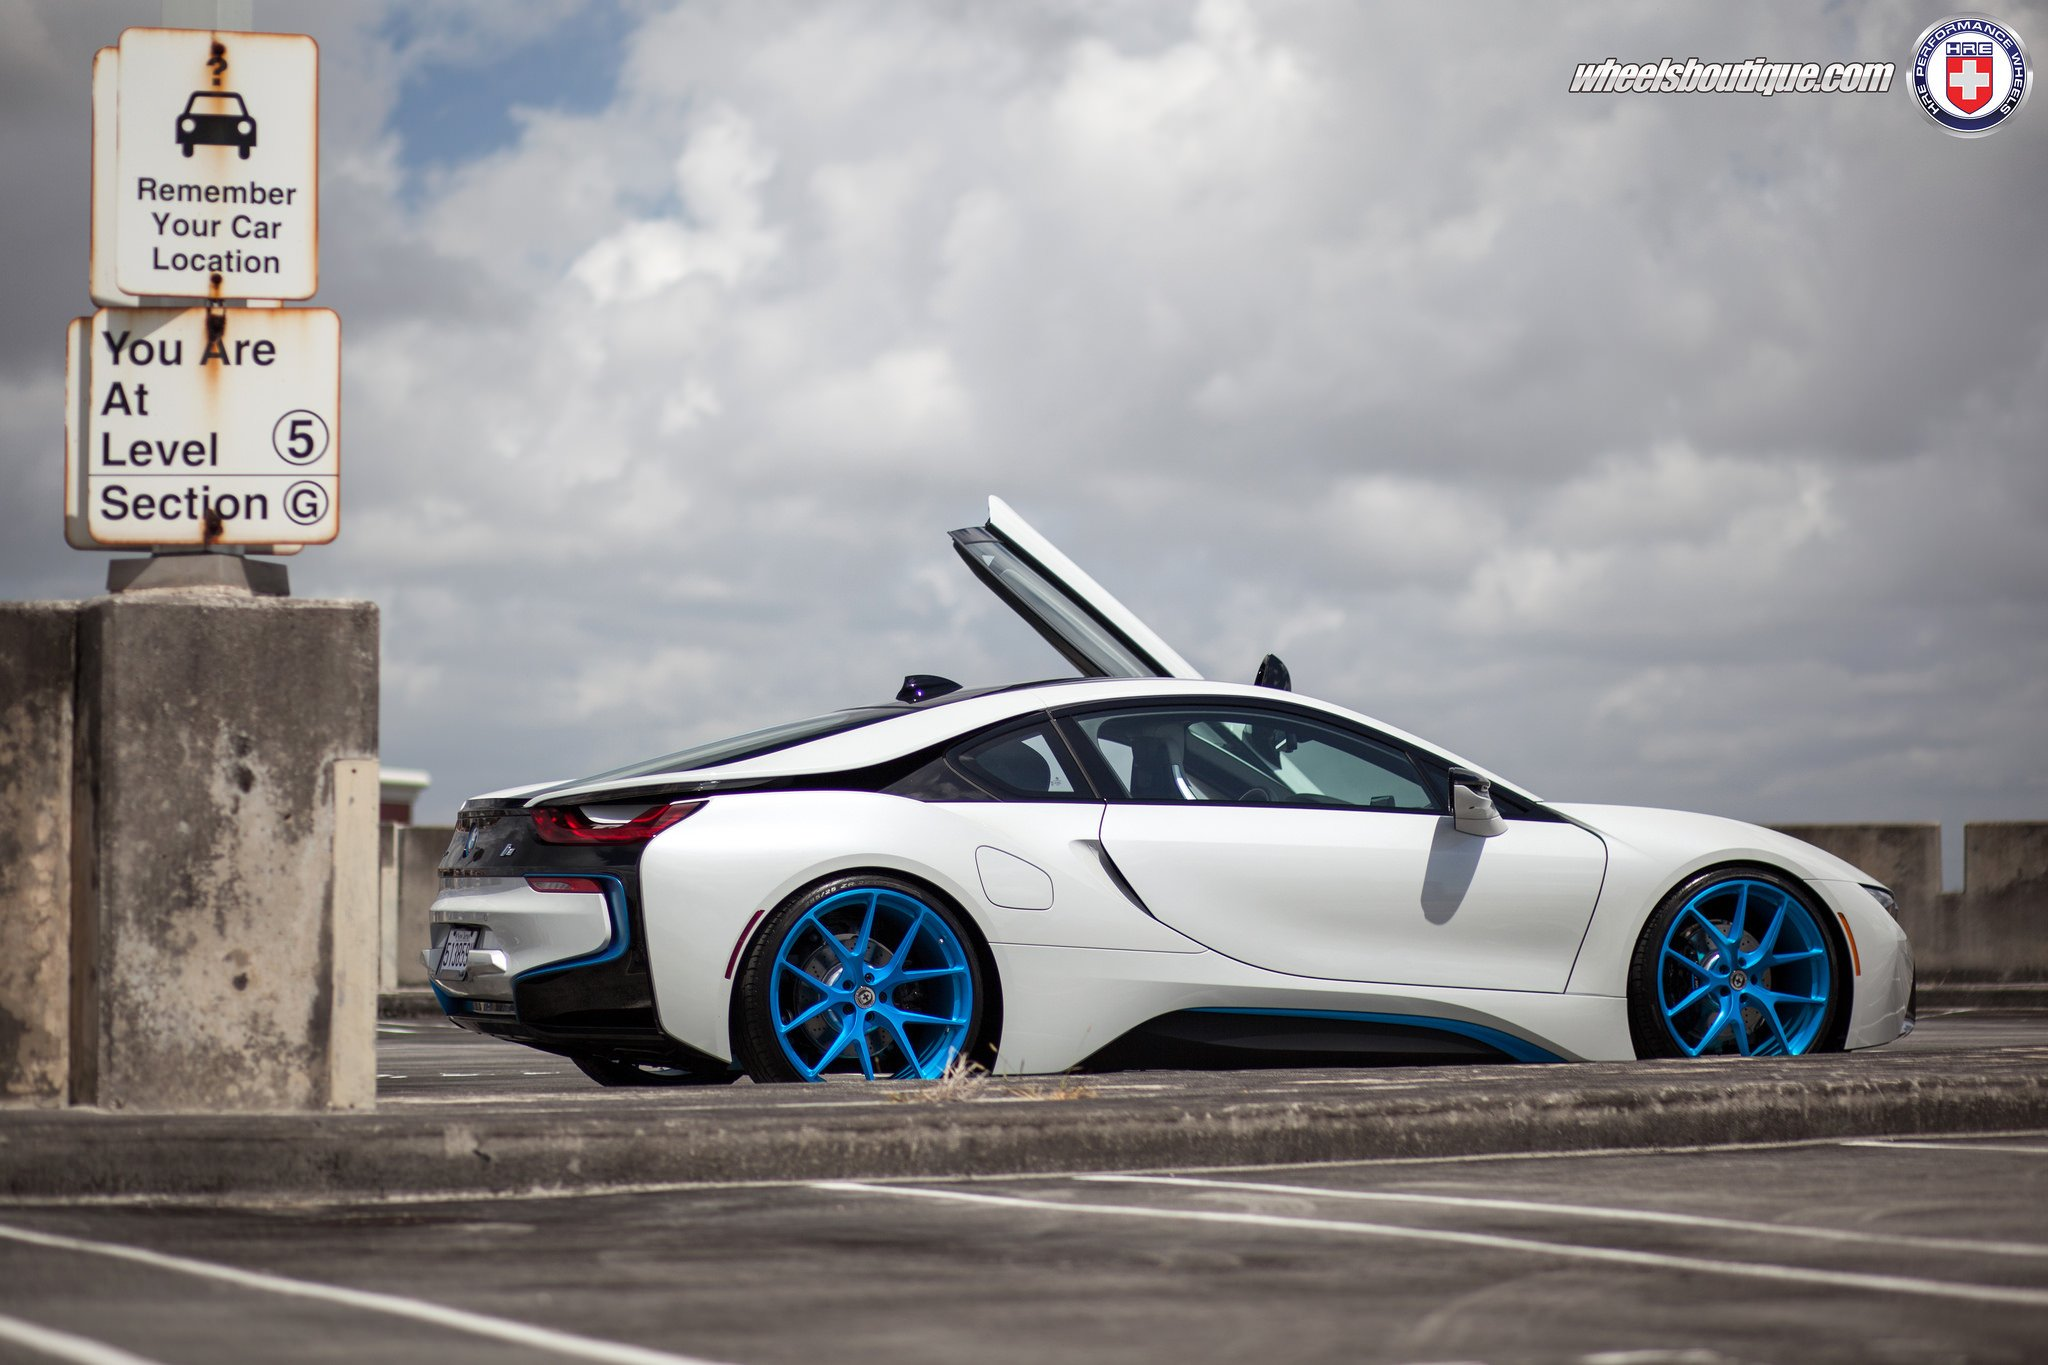 bmw i8 electric coupe cars tuning hre wheels wallpaper 2048x1365 686500 wallpaperup. Black Bedroom Furniture Sets. Home Design Ideas